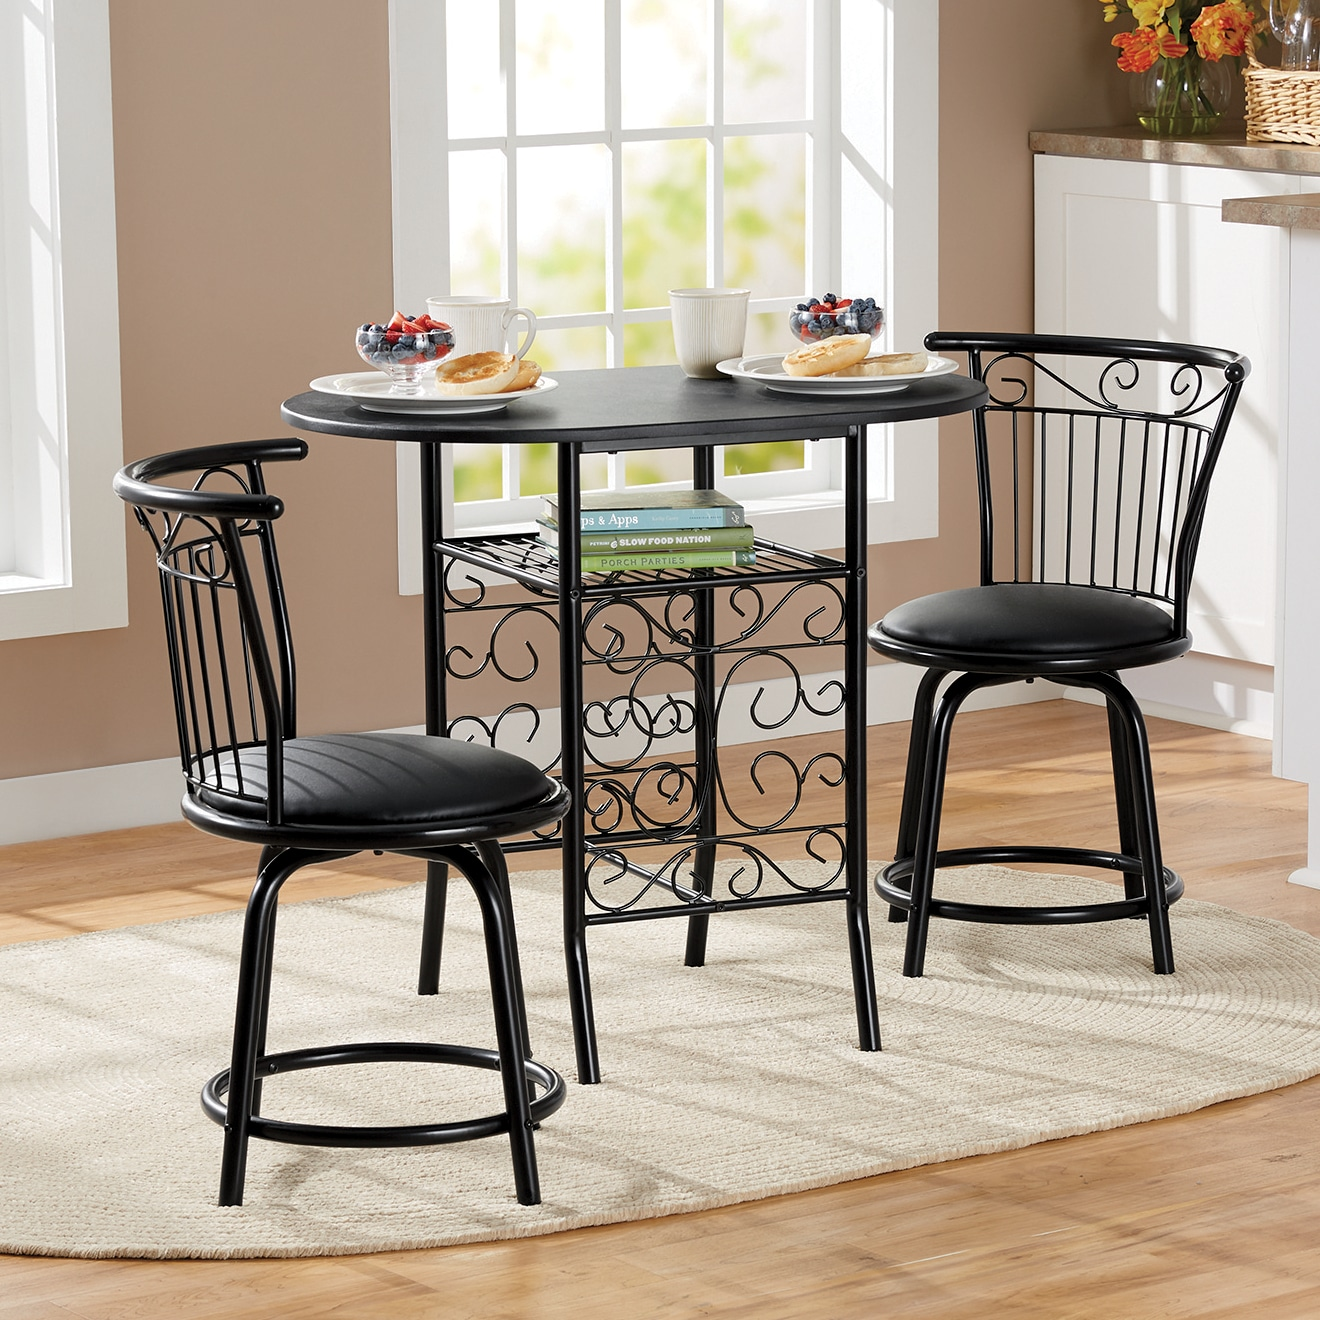 bistro chairs dining room stackable wicker sets 3 pc seventh avenue cara set